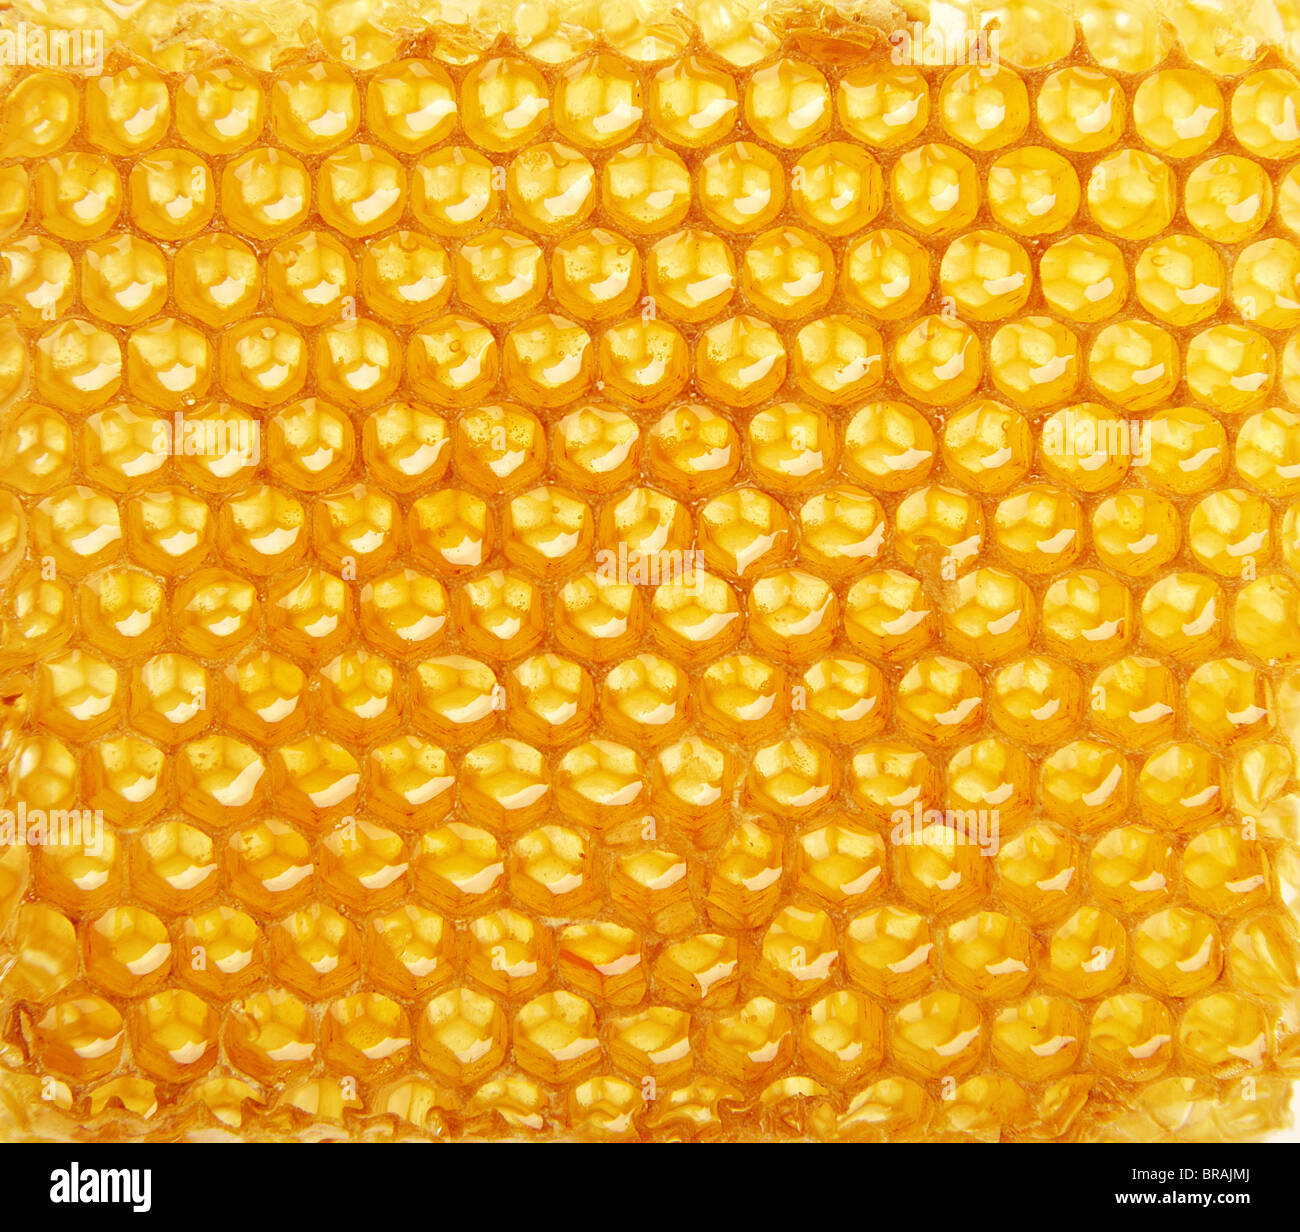 Yellow honeycomb wax cell detail texture background Stock Photo